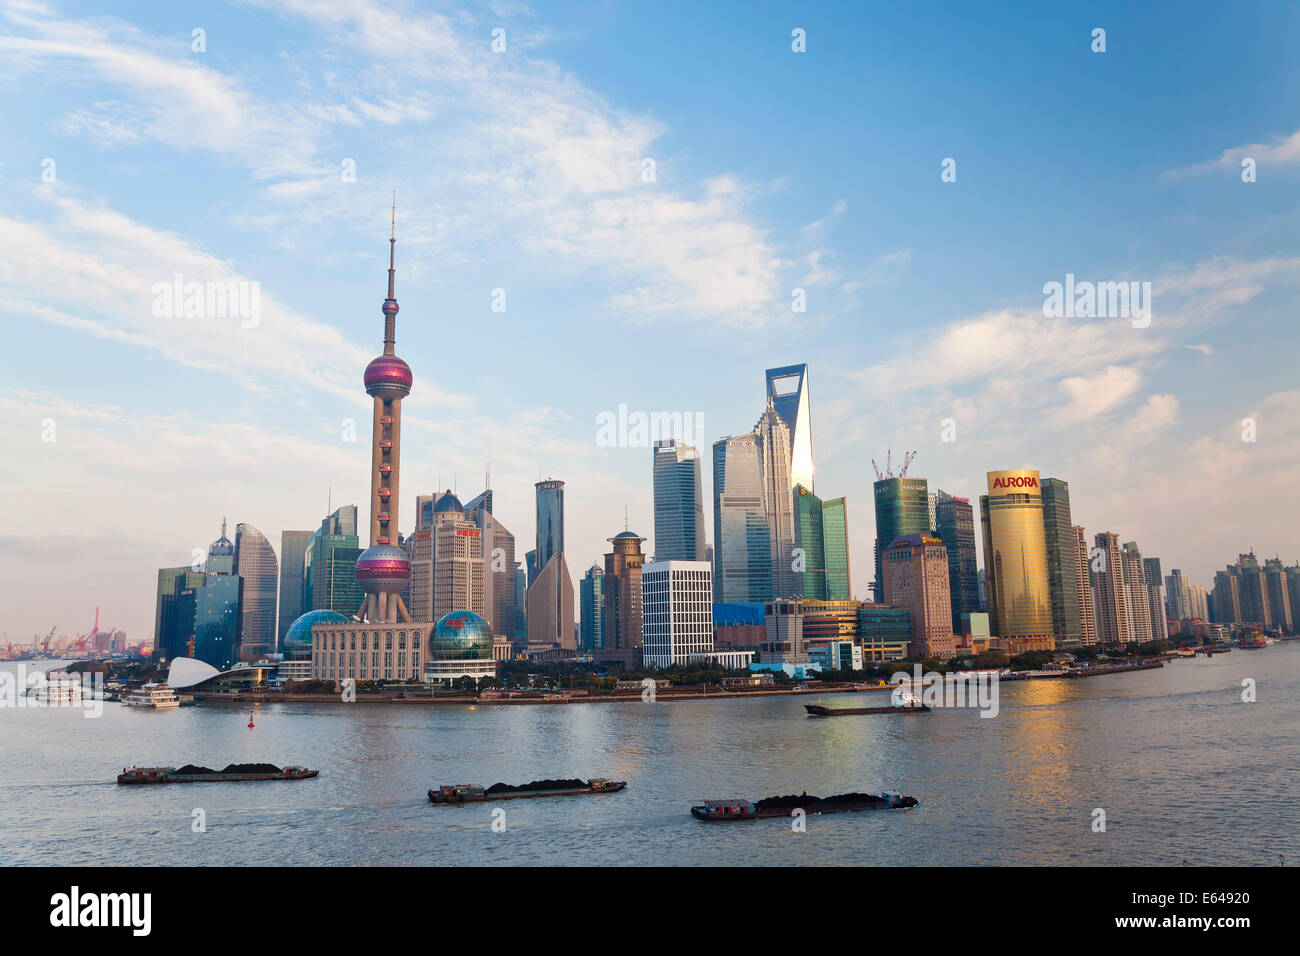 Les barges et les toits de Pudong, Shanghai, Chine Photo Stock